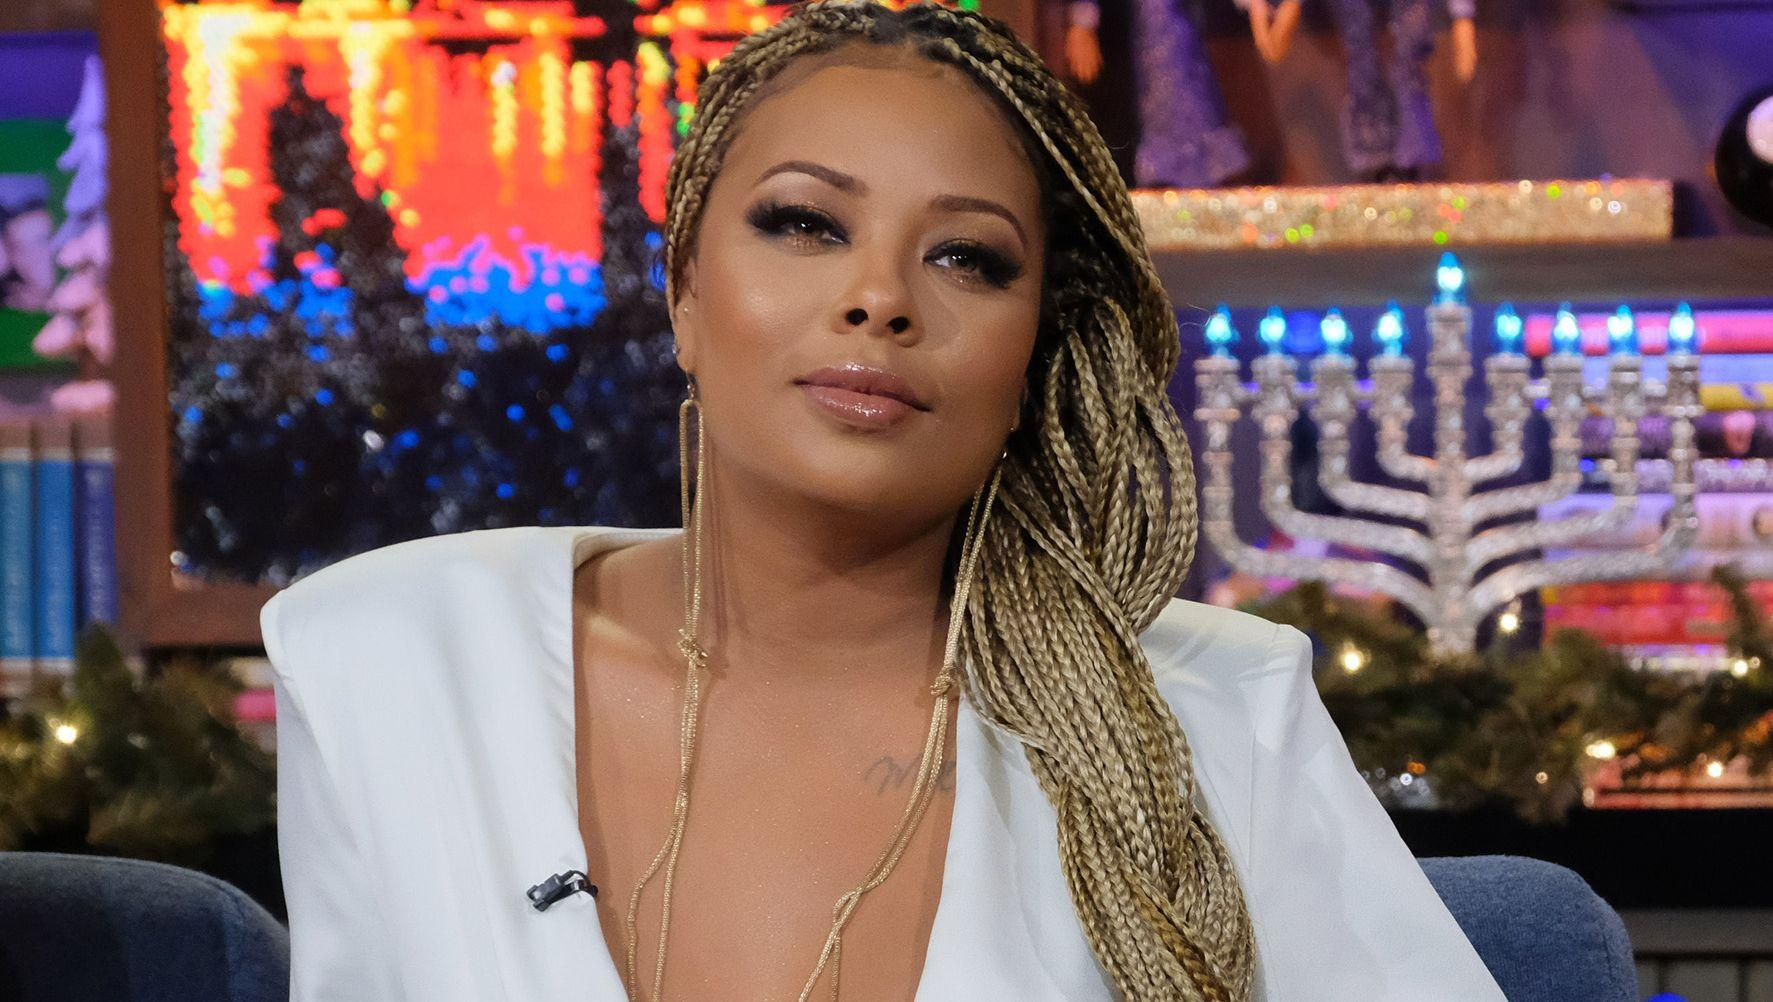 Eva Marcille Has A Natural Alternative For Your Overall Health - Here's How You Can Boost Your Immune System These Days